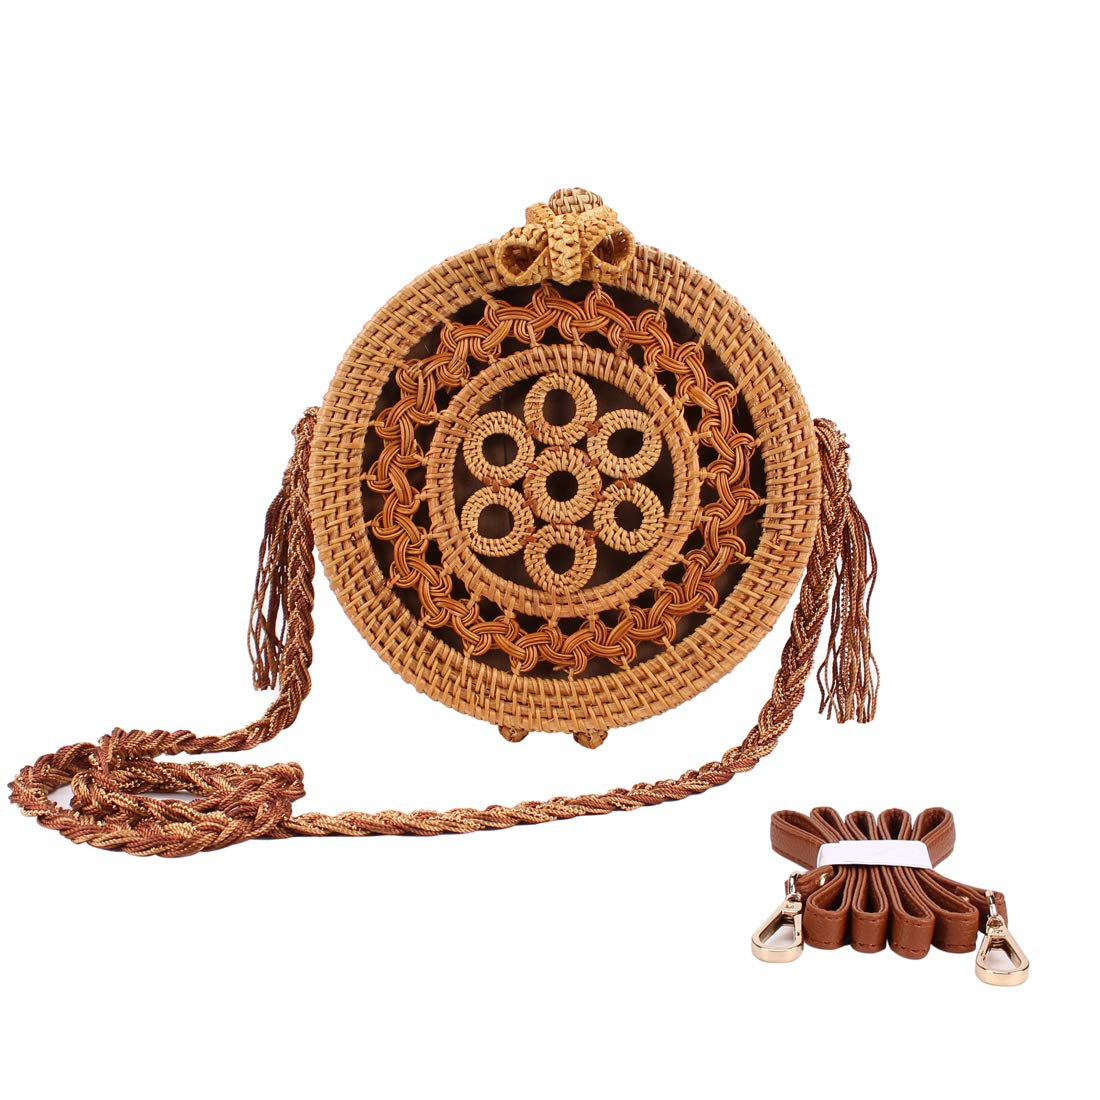 Sornean Handwoven Round Rattan Bag (Flower Weave), Round Bag, Straw Bag, Bali Bag with Rrpalceable Straps (Knitted Pattern)